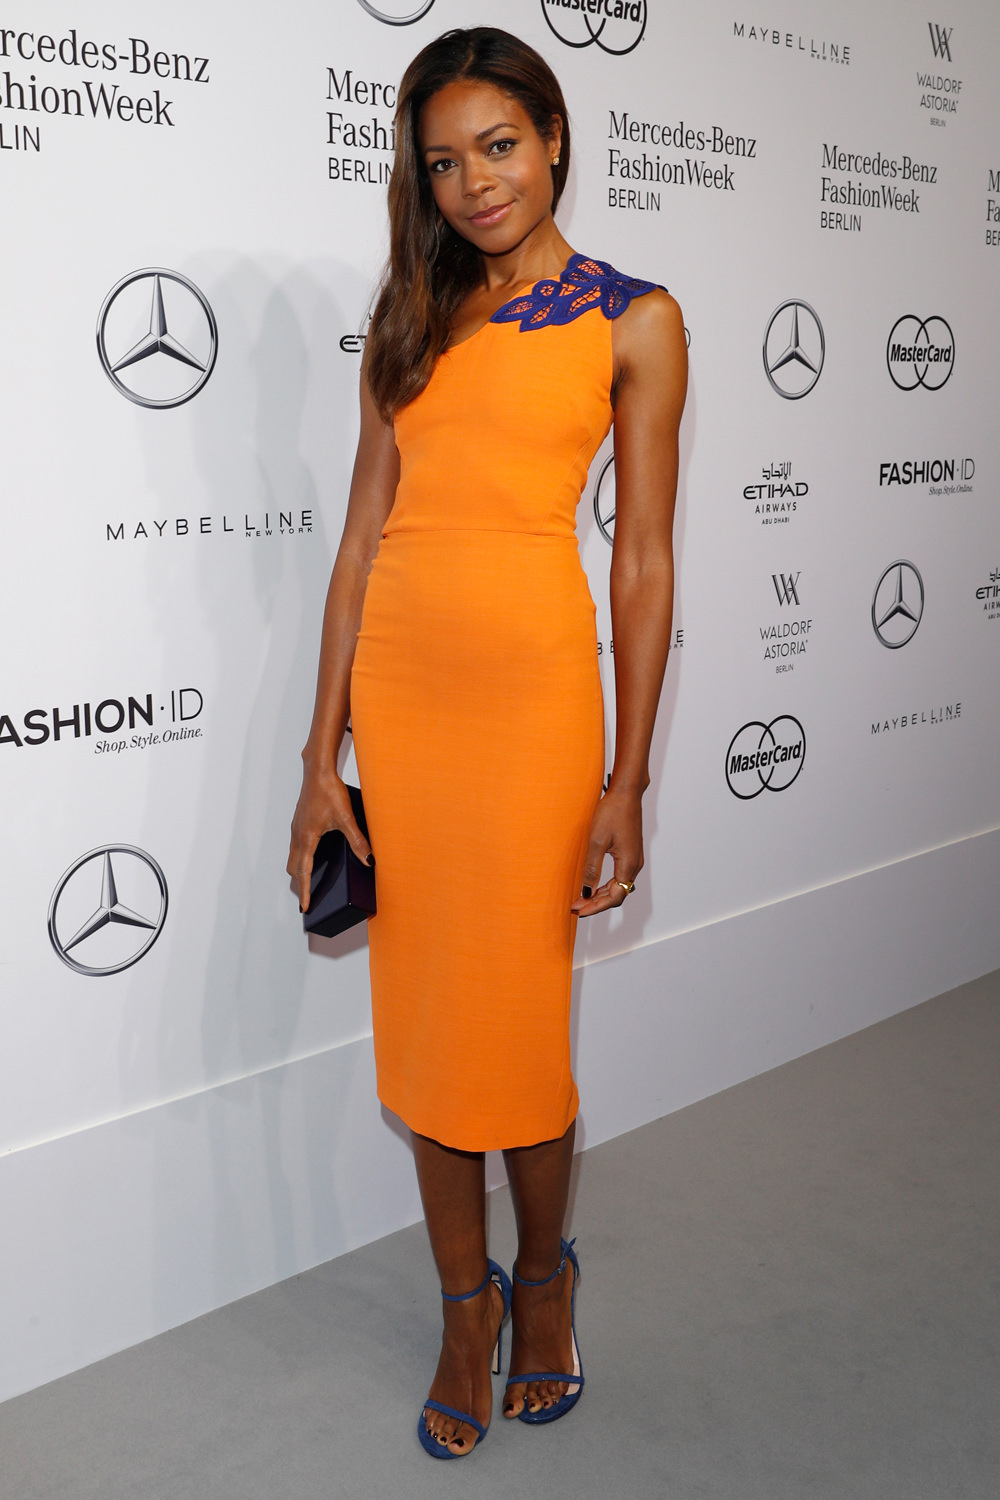 Naomie-Harris-Designer-for-Tomorrow-Berlin-Fashion-Week-Victoria-Beckham-Tom-Lorenzo-Site (1)